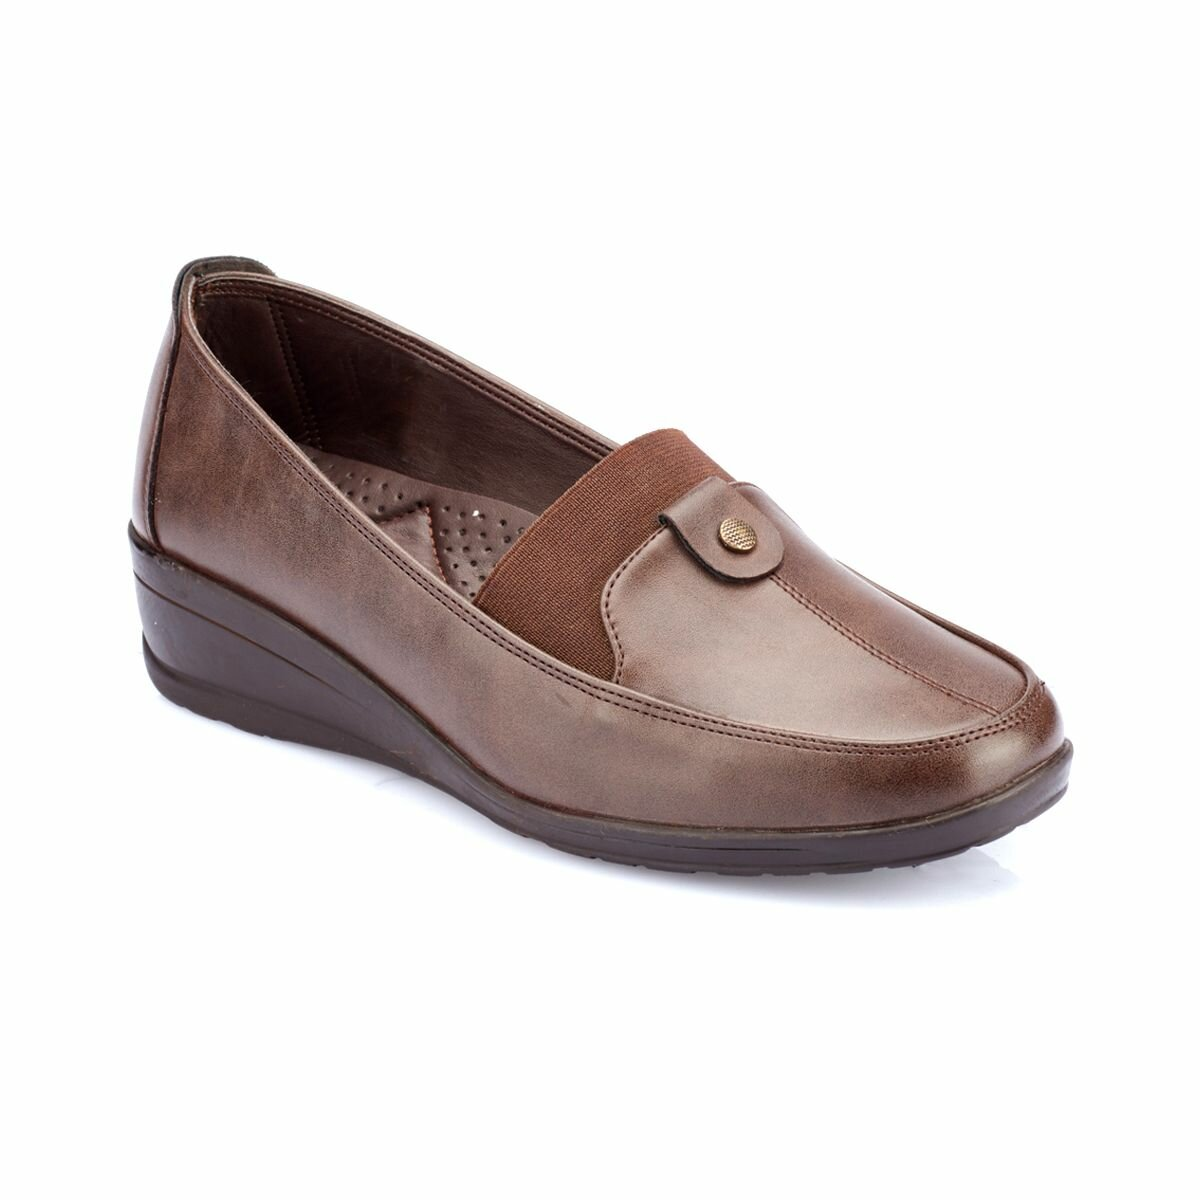 FLO 82. 150056.Z Brown Women 'S Shoes Polaris